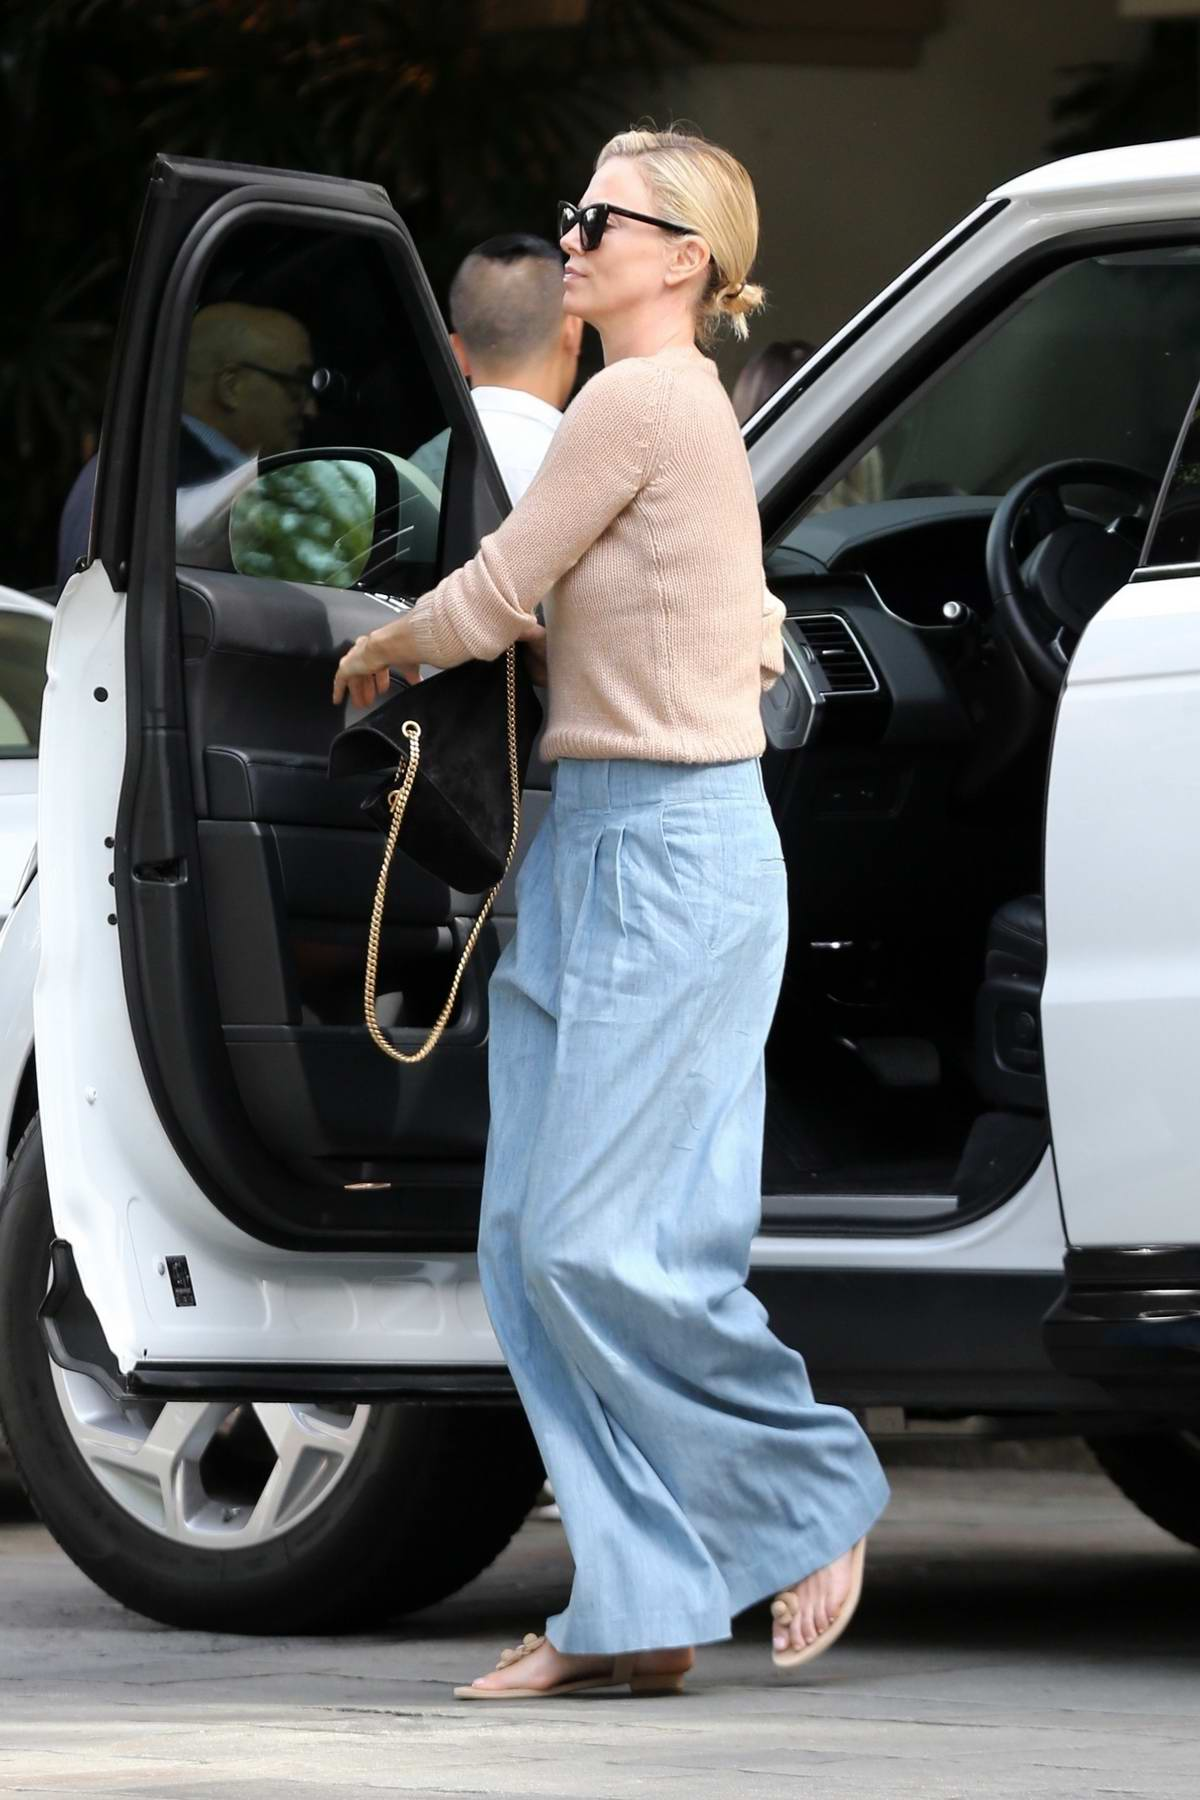 Charlize Theron wears a pair of flared jeans and sweater as she takes her kids to lunch in Beverly Hills, Los Angeles